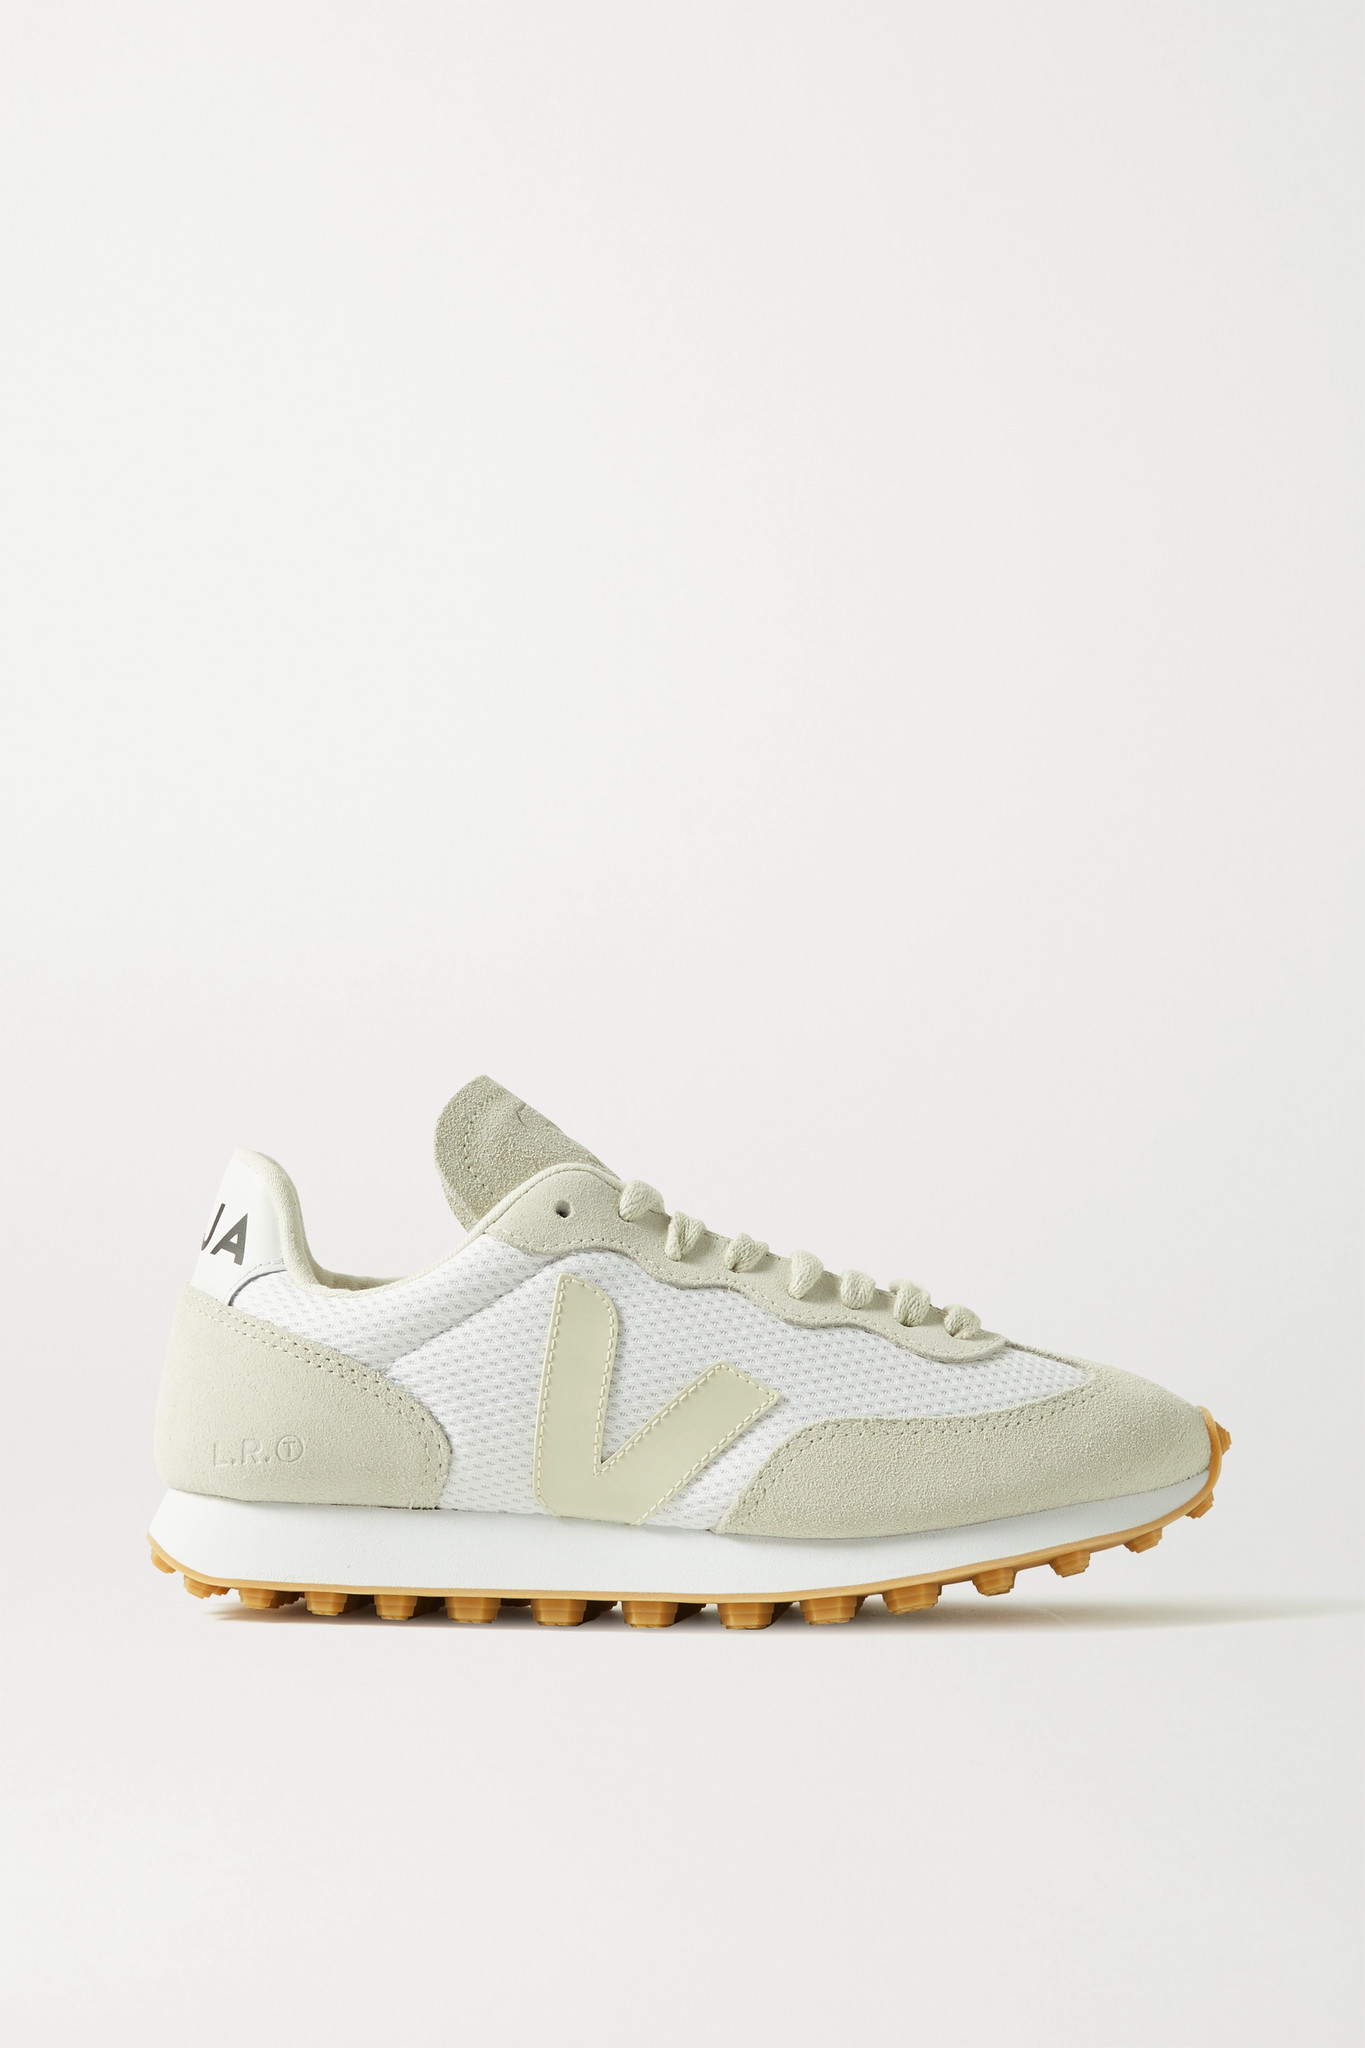 VEJA - + Net Sustain Rio Branco Leather-trimmed Suede And Mesh Sneakers - White - IT37